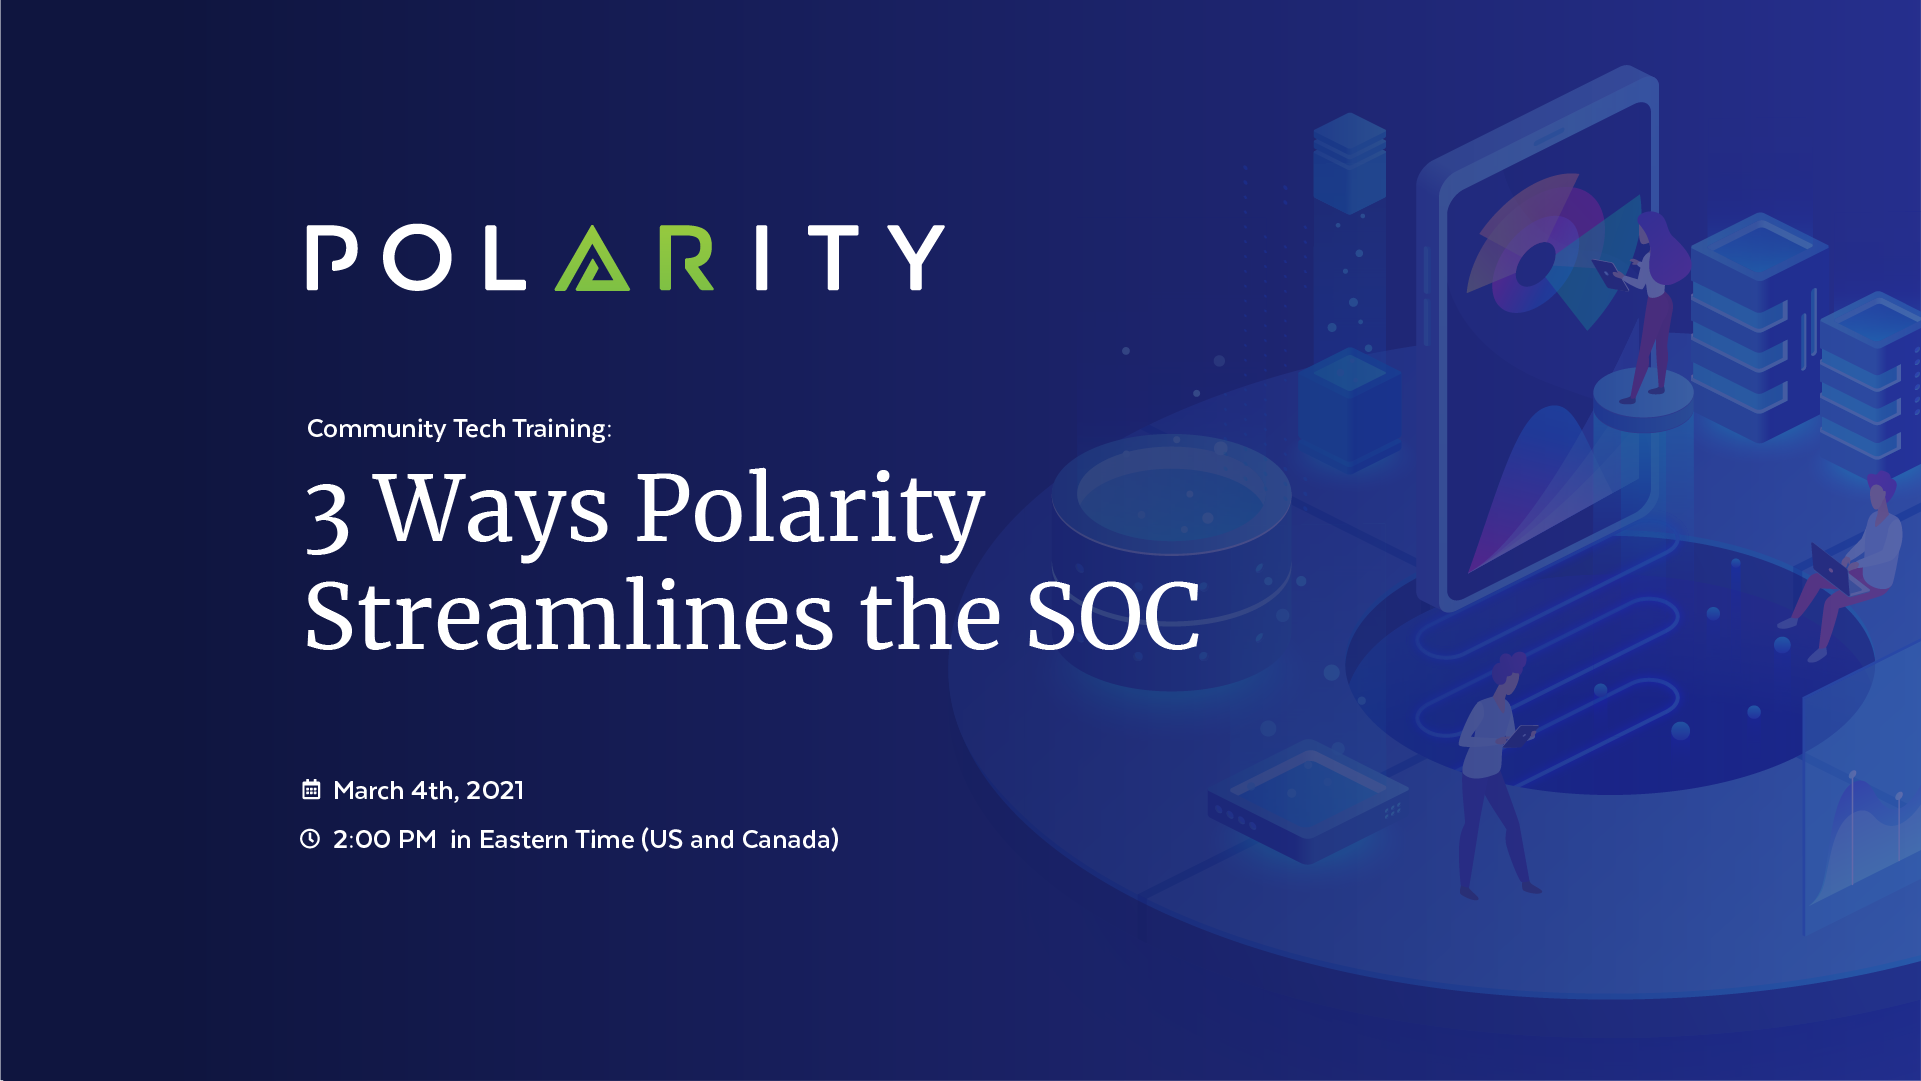 Community Tech Training: 3 Ways Polarity Streamlines the SOCcover image